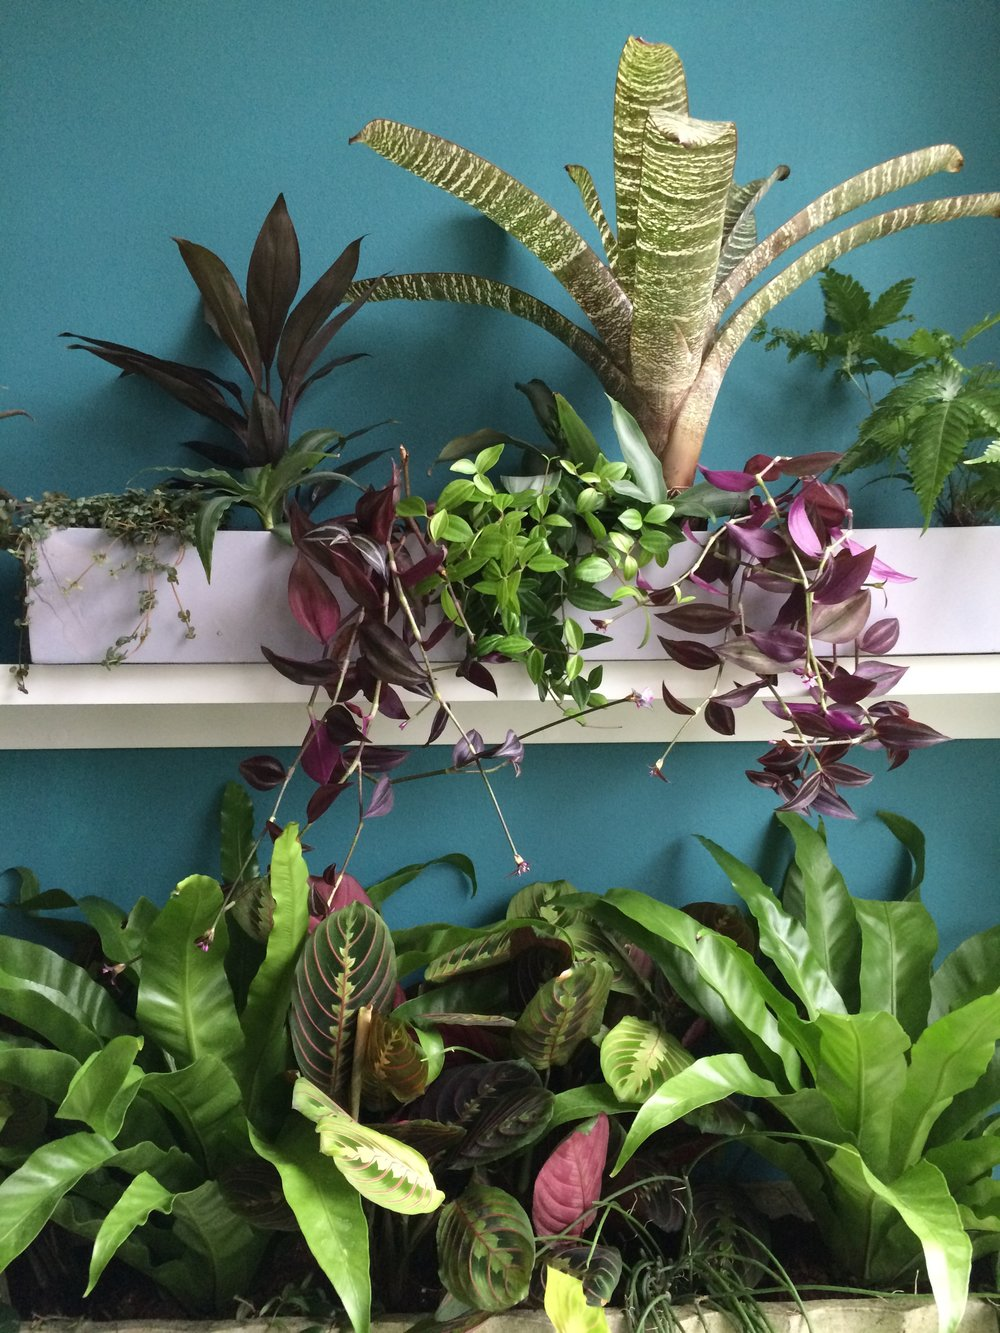 Marantas and ferns on the shelves